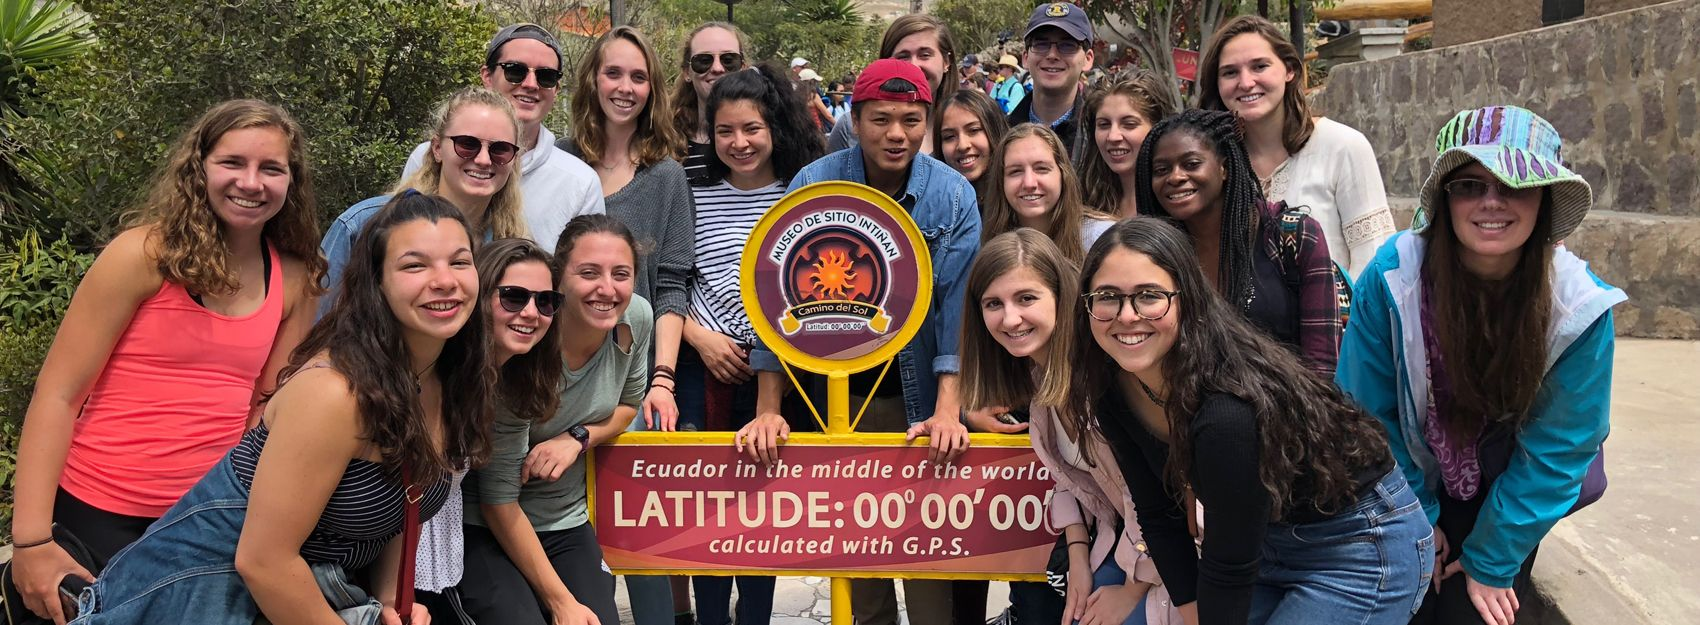 Faculty-Led Study Abroad Students in Quito at the Equator